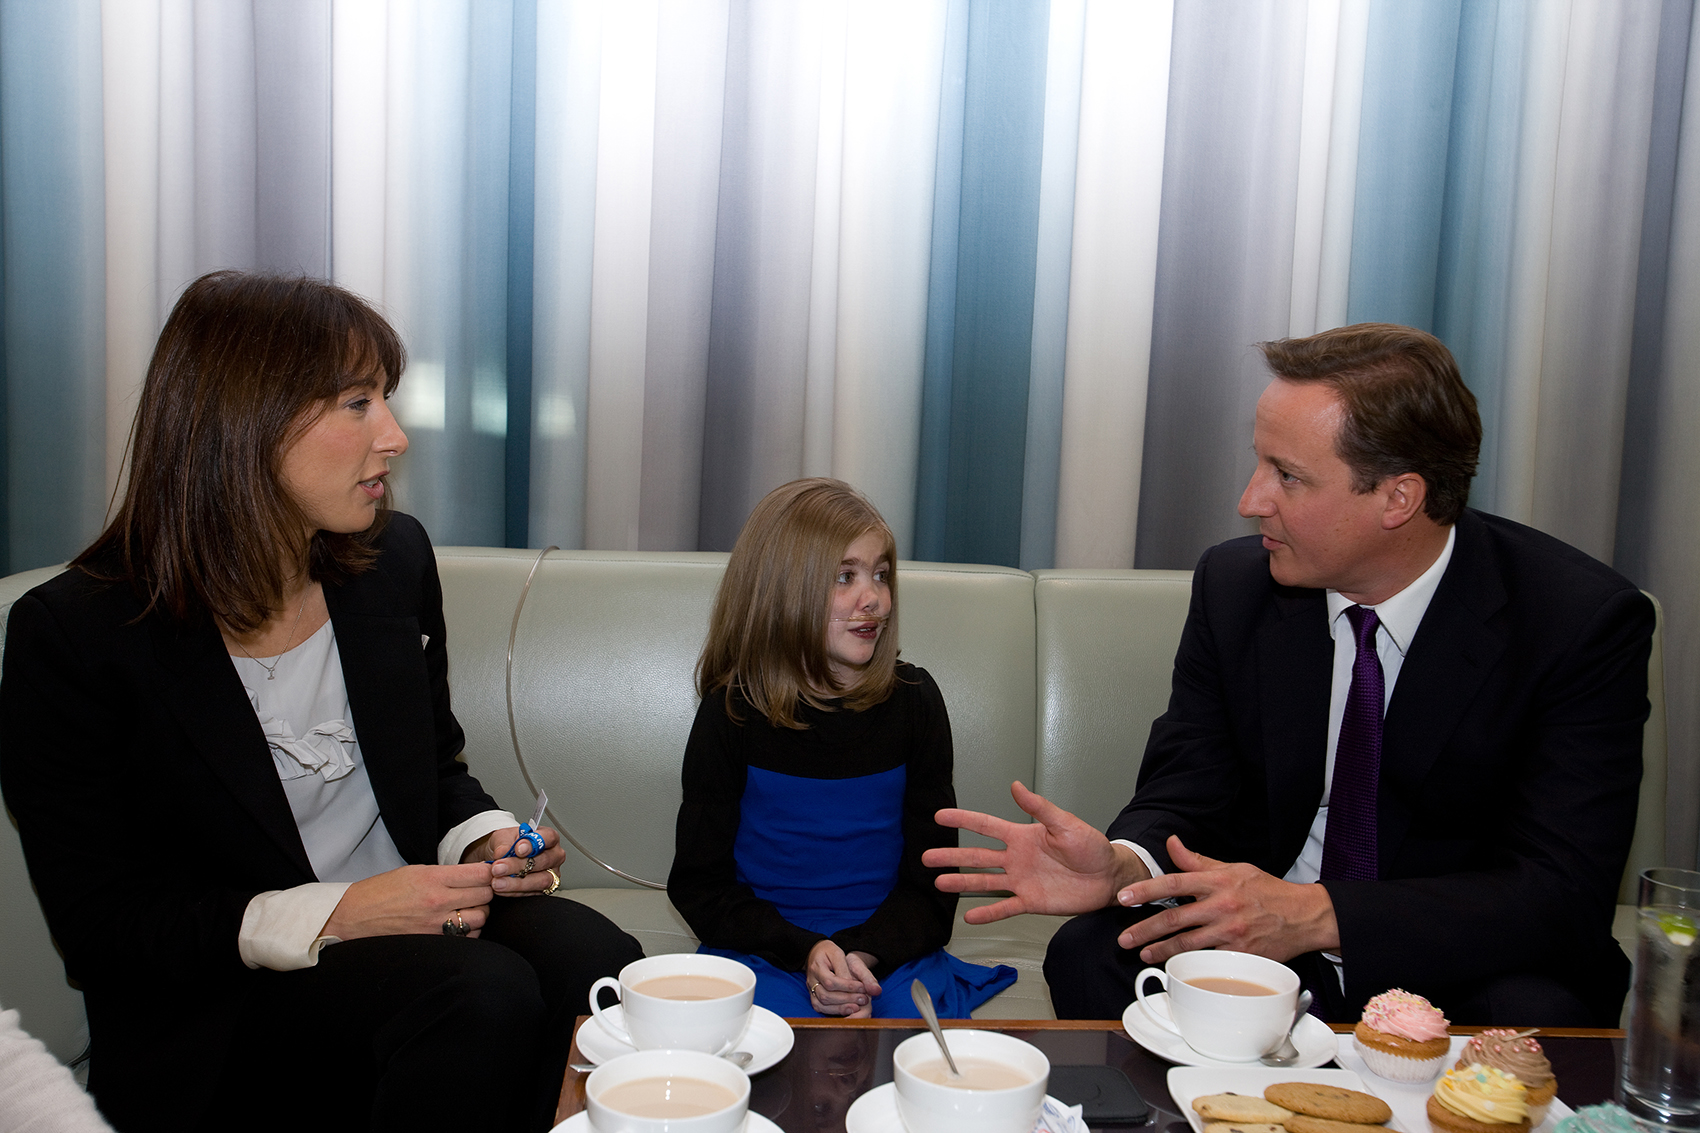 Kirsty Howard meets the Camerons